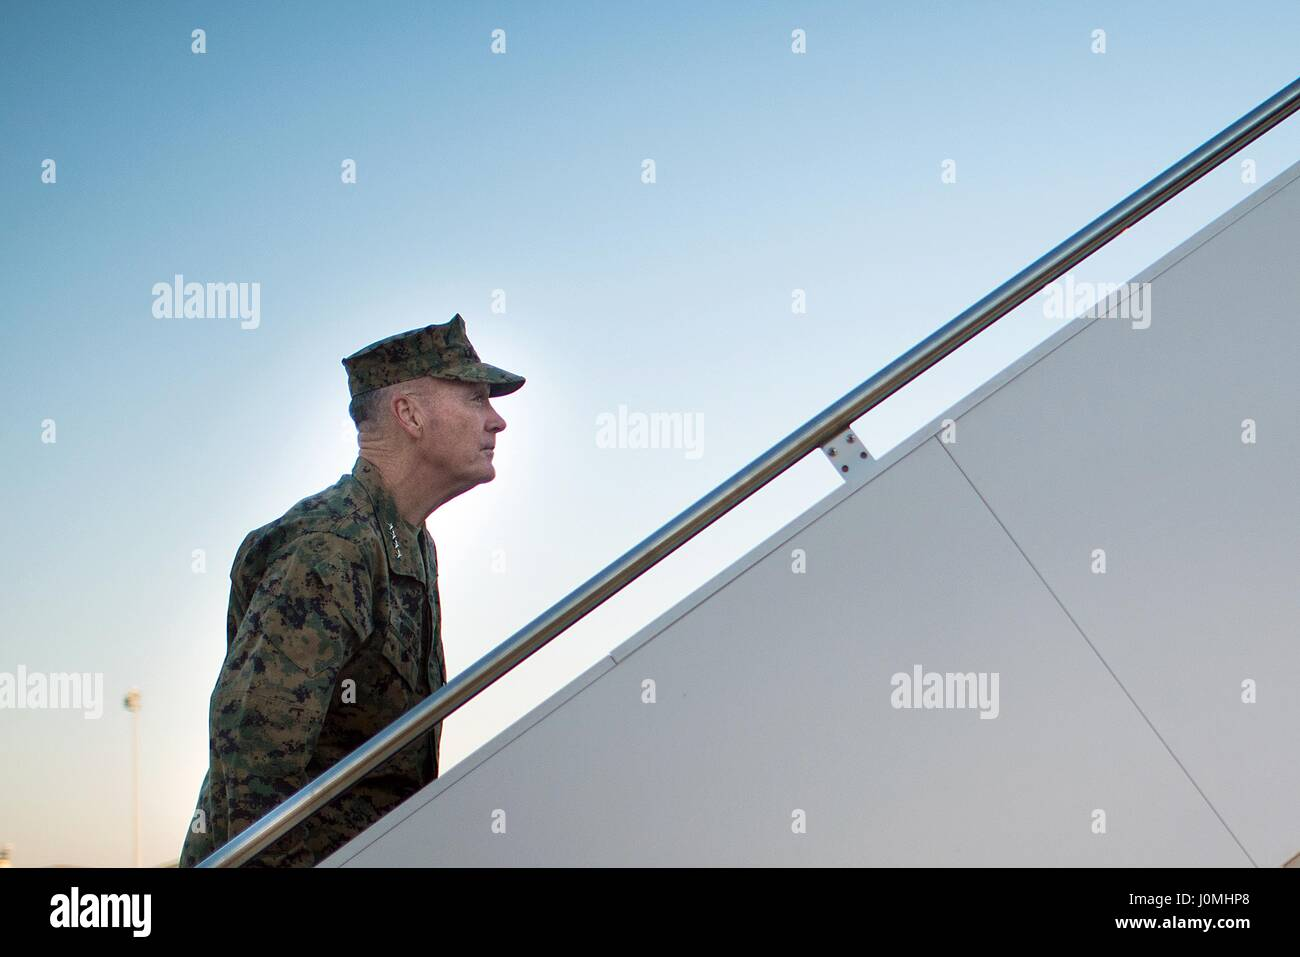 Joseph F Dunford, the chairman of the Joint Chiefs of Staff, boards a C-32 aircraft at Andrews, AFB, Maryland, February - Stock Image